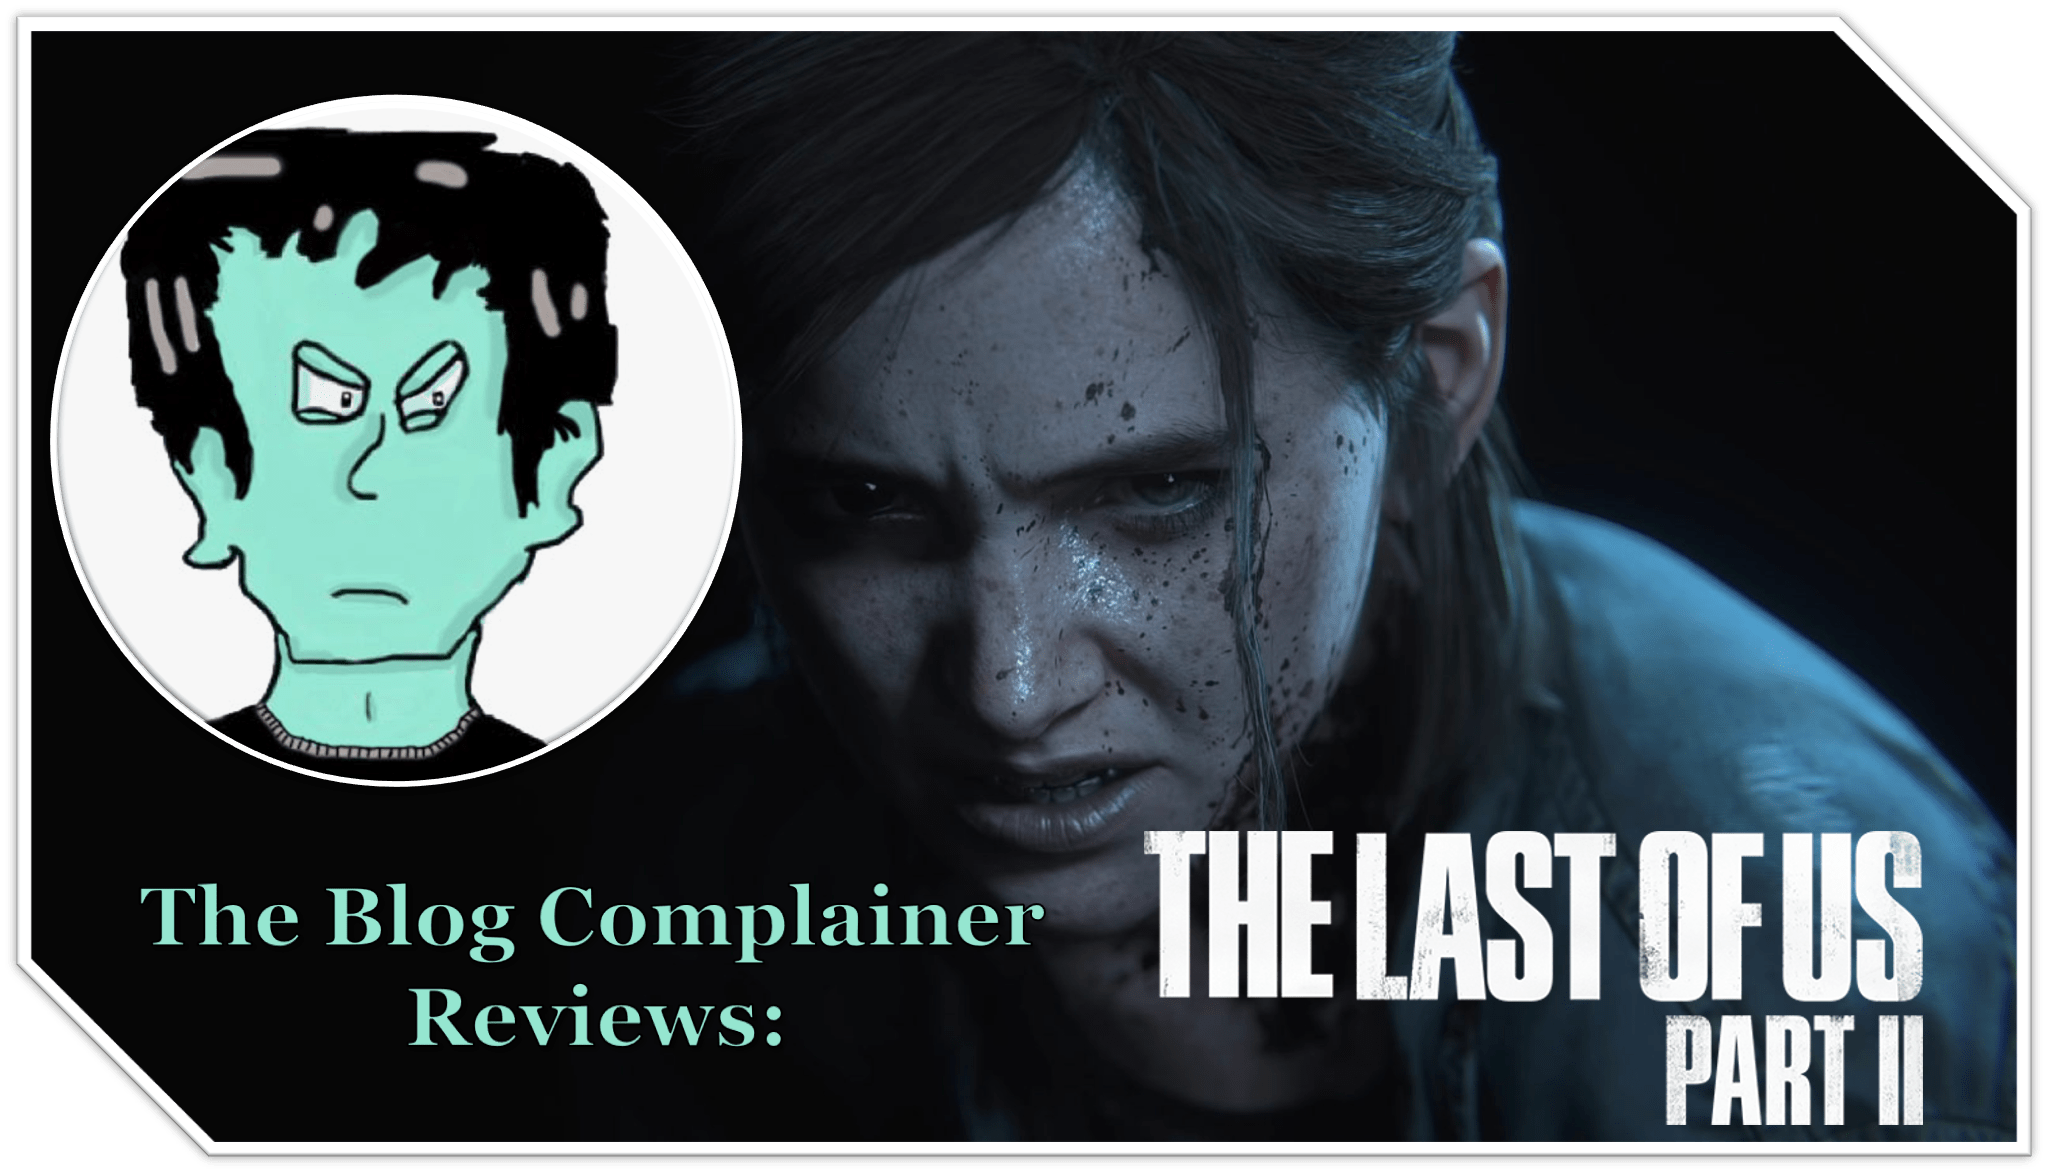 The Last of Us Part II: Game Review